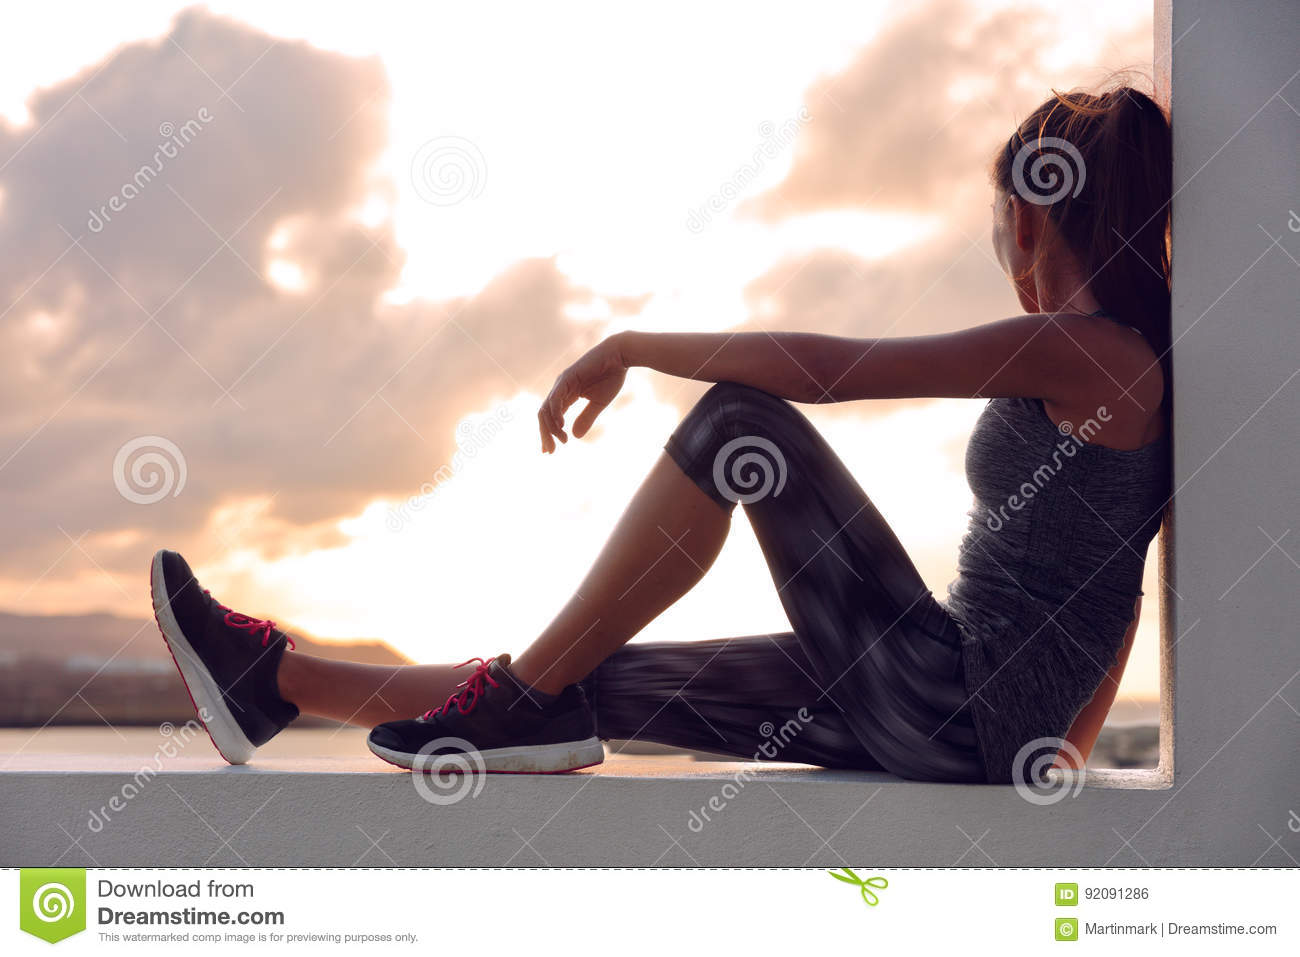 Fitness athlete runner woman relaxing in sunset